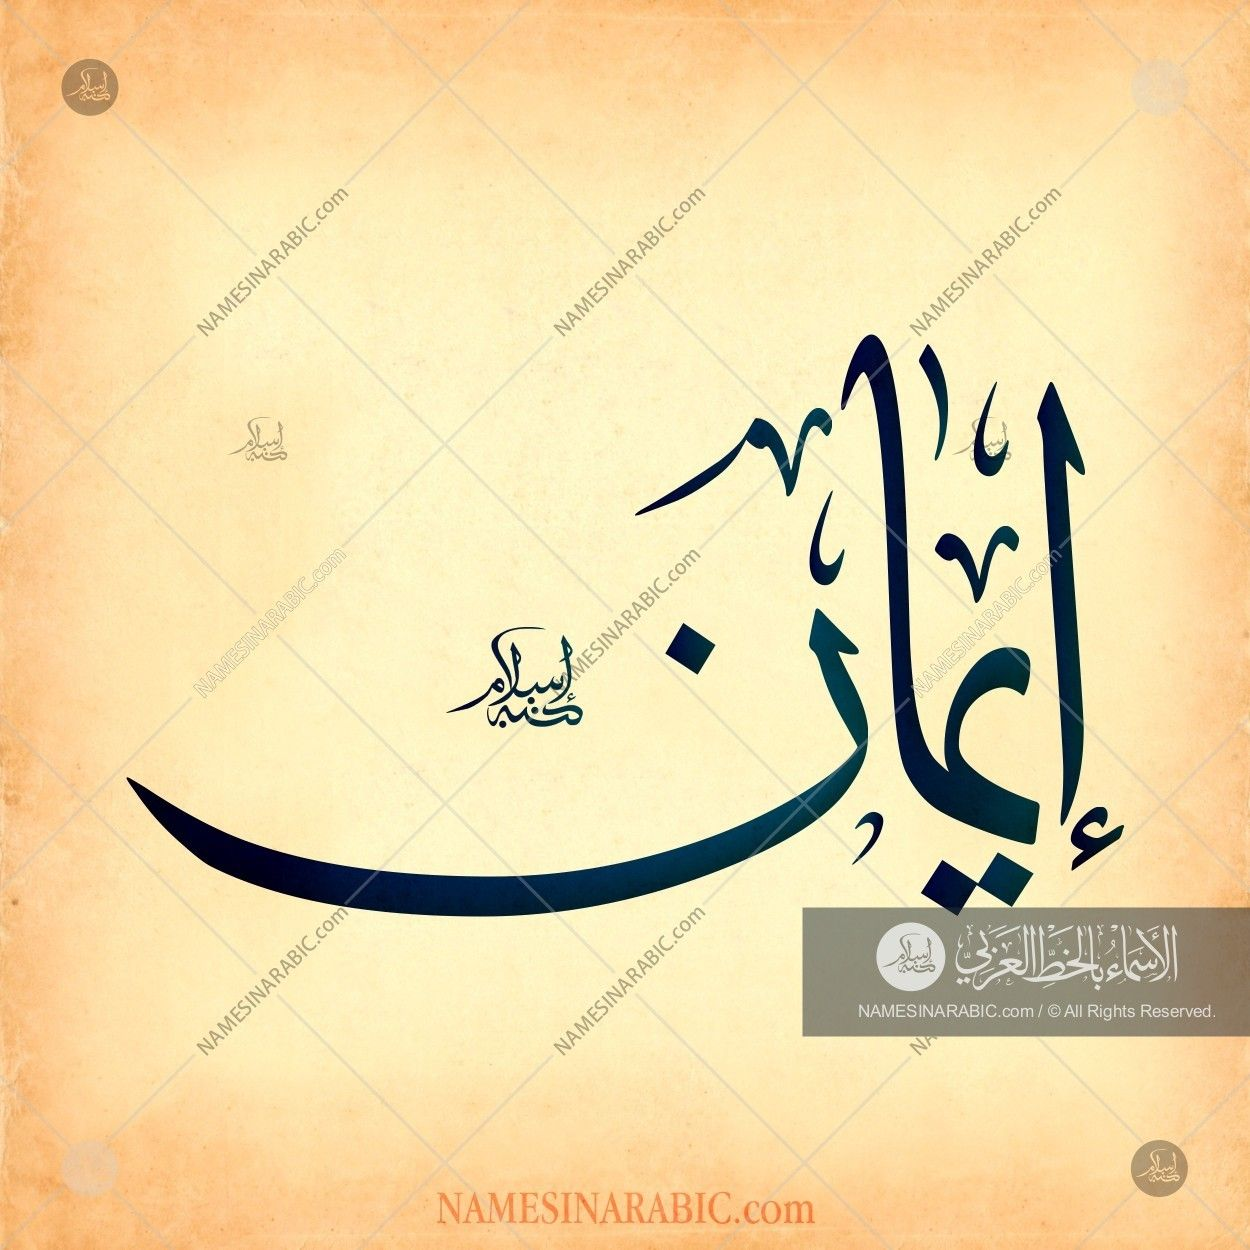 Pin By Moooon87 On Tatouage Personnel Calligraphy Name Calligraphy Design Arabic Calligraphy Design